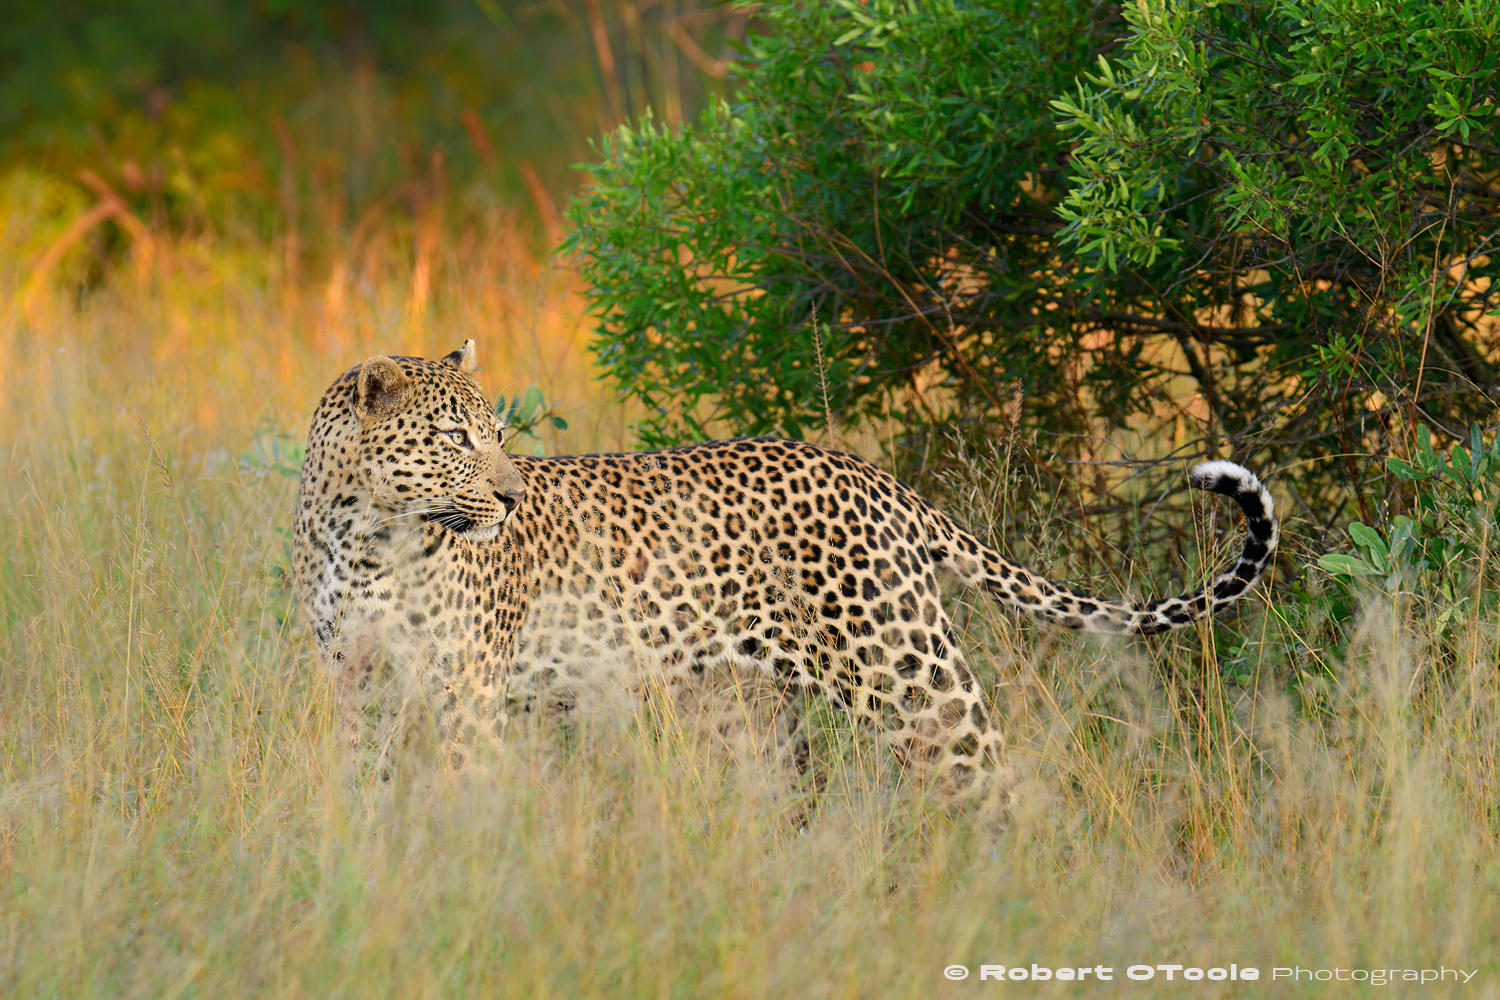 Leopard out on a early morning hunt Nikon D500 Sigma 120-300 f/2.8 S @ 220mm 1/500s f/4 ISO 400 manual mode handheld